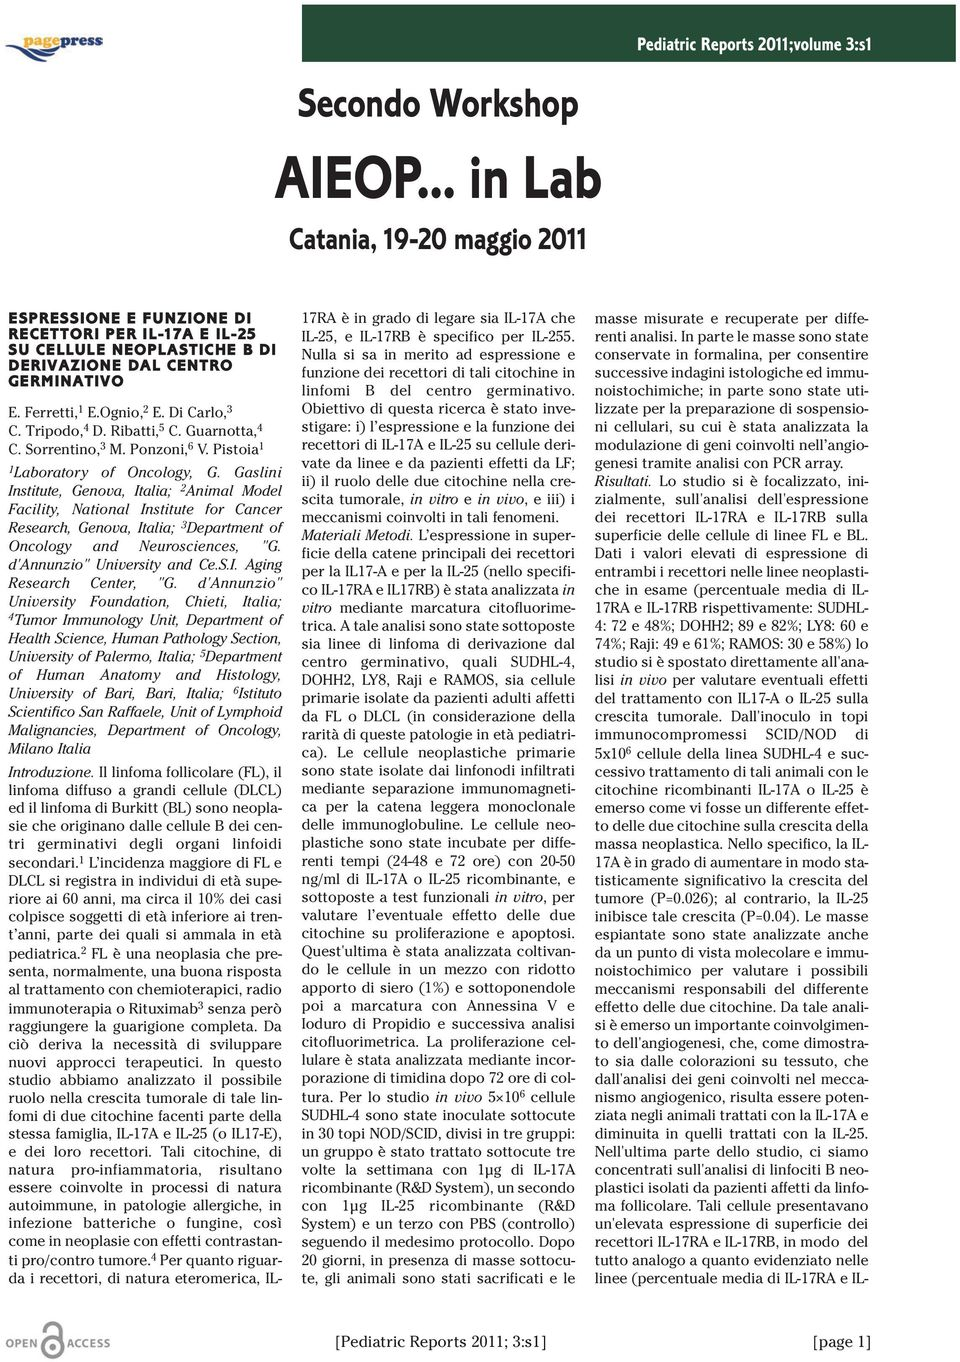 Tripodo, 4 D. Ribatti, 5 C. Guarnotta, 4 C. Sorrentino, 3 M. Ponzoni, 6 V. Pistoia 1 1 Laboratory of Oncology, G.